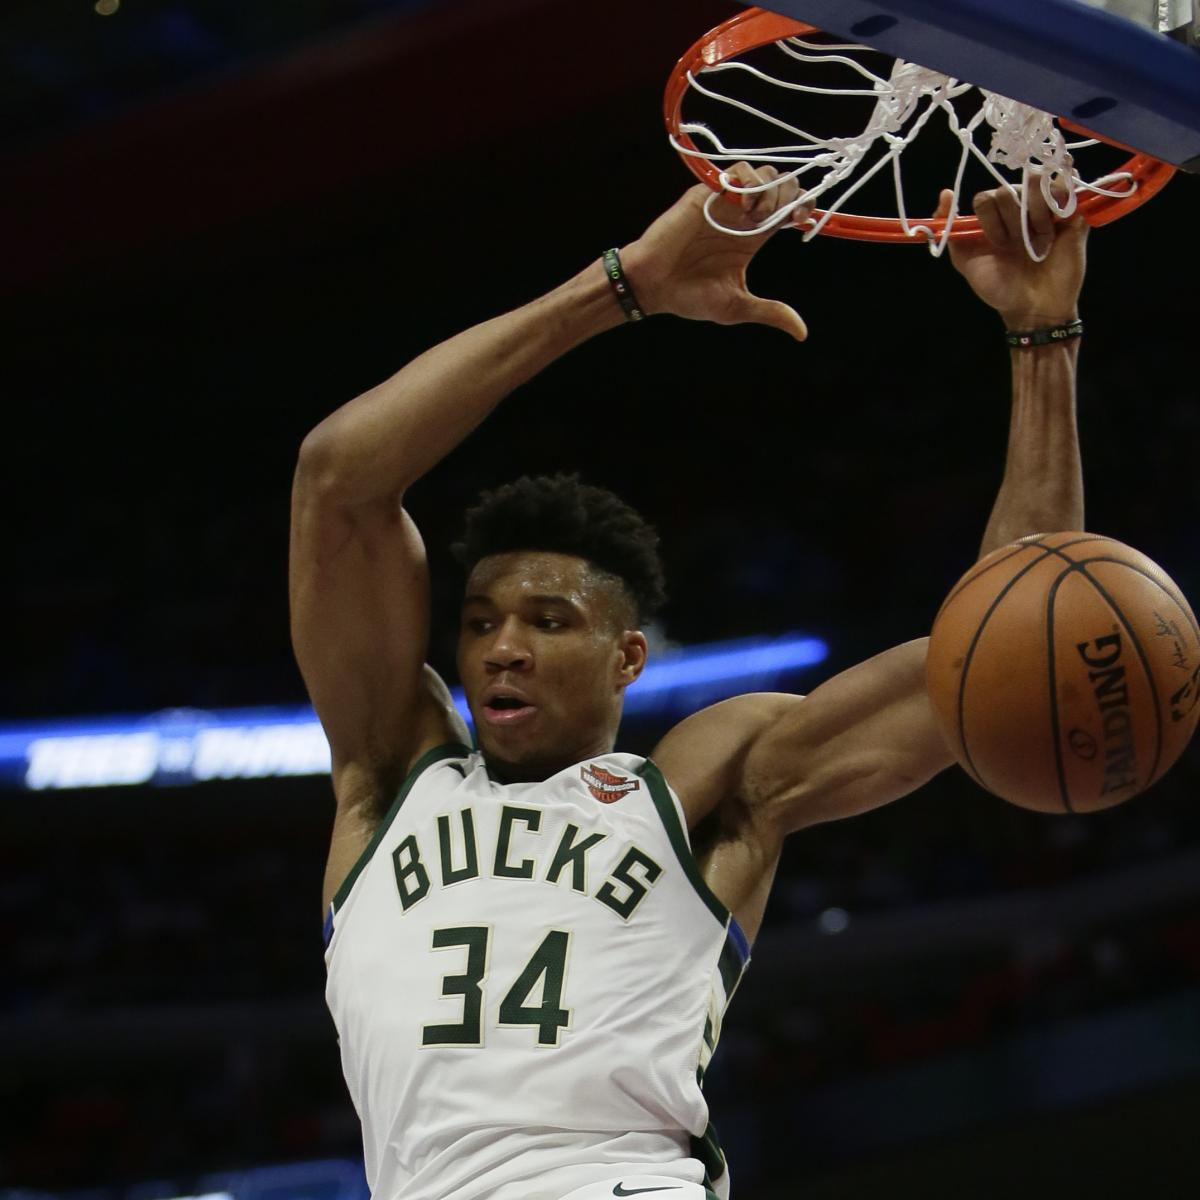 2019 NBA Eastern Conference Title Odds: Bucks Favored